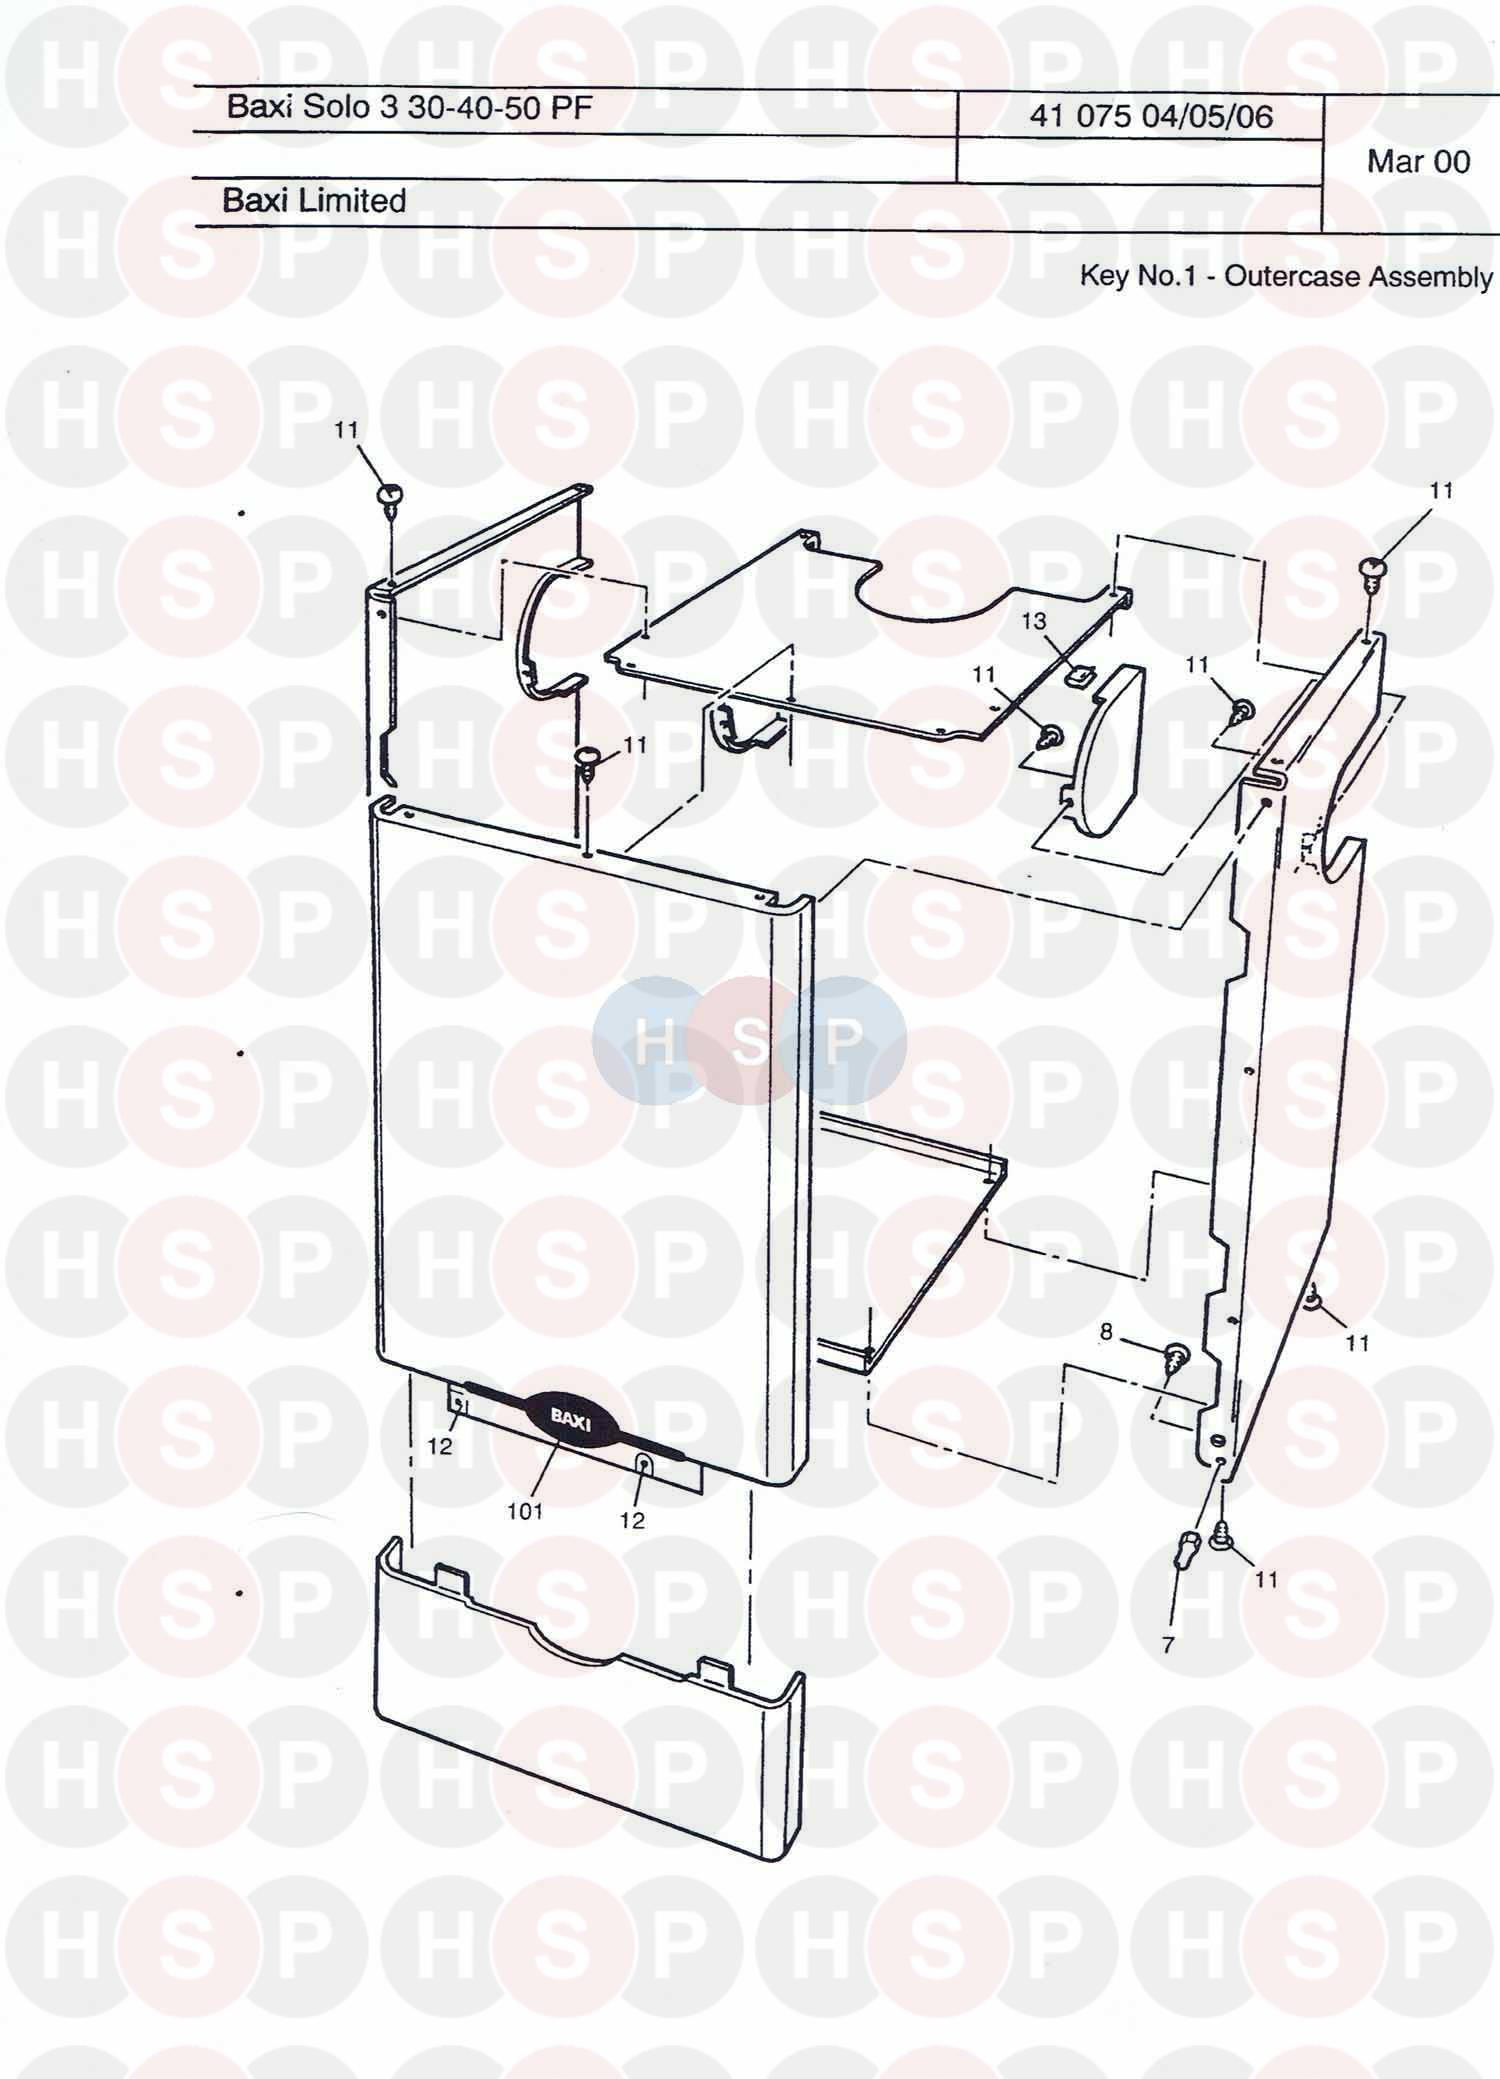 baxi solo 3 60 pf  assembly 2  diagram